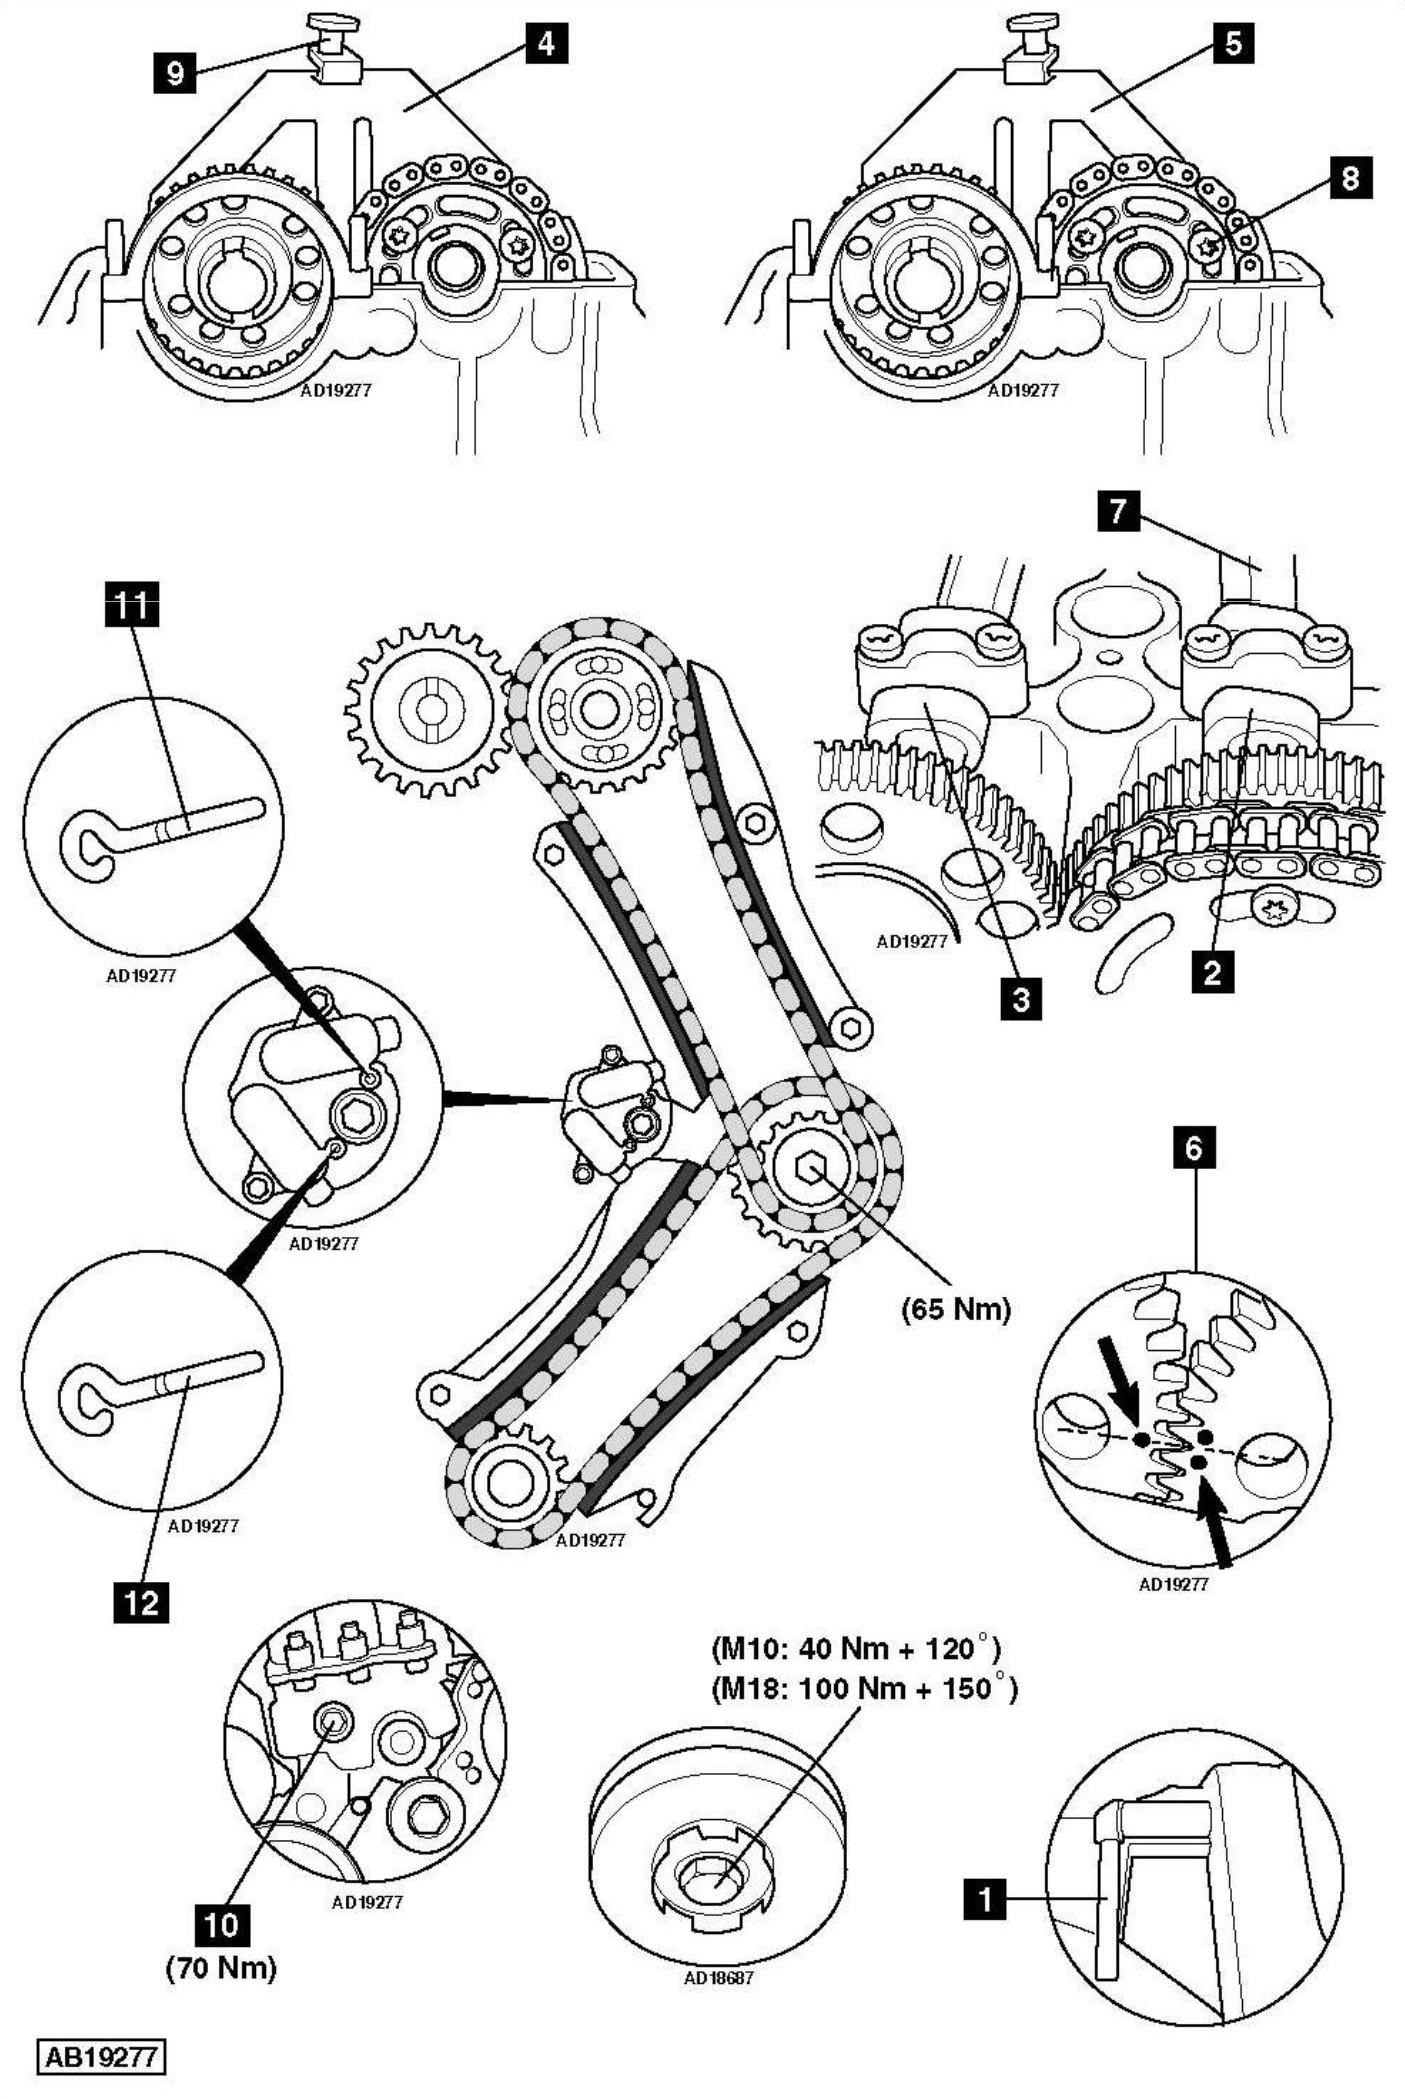 Bmw E46 2.0d Wiring Diagram How to Replace Timing Chain On Bmw 323i E46 Timing Belt Of Bmw E46 2.0d Wiring Diagram